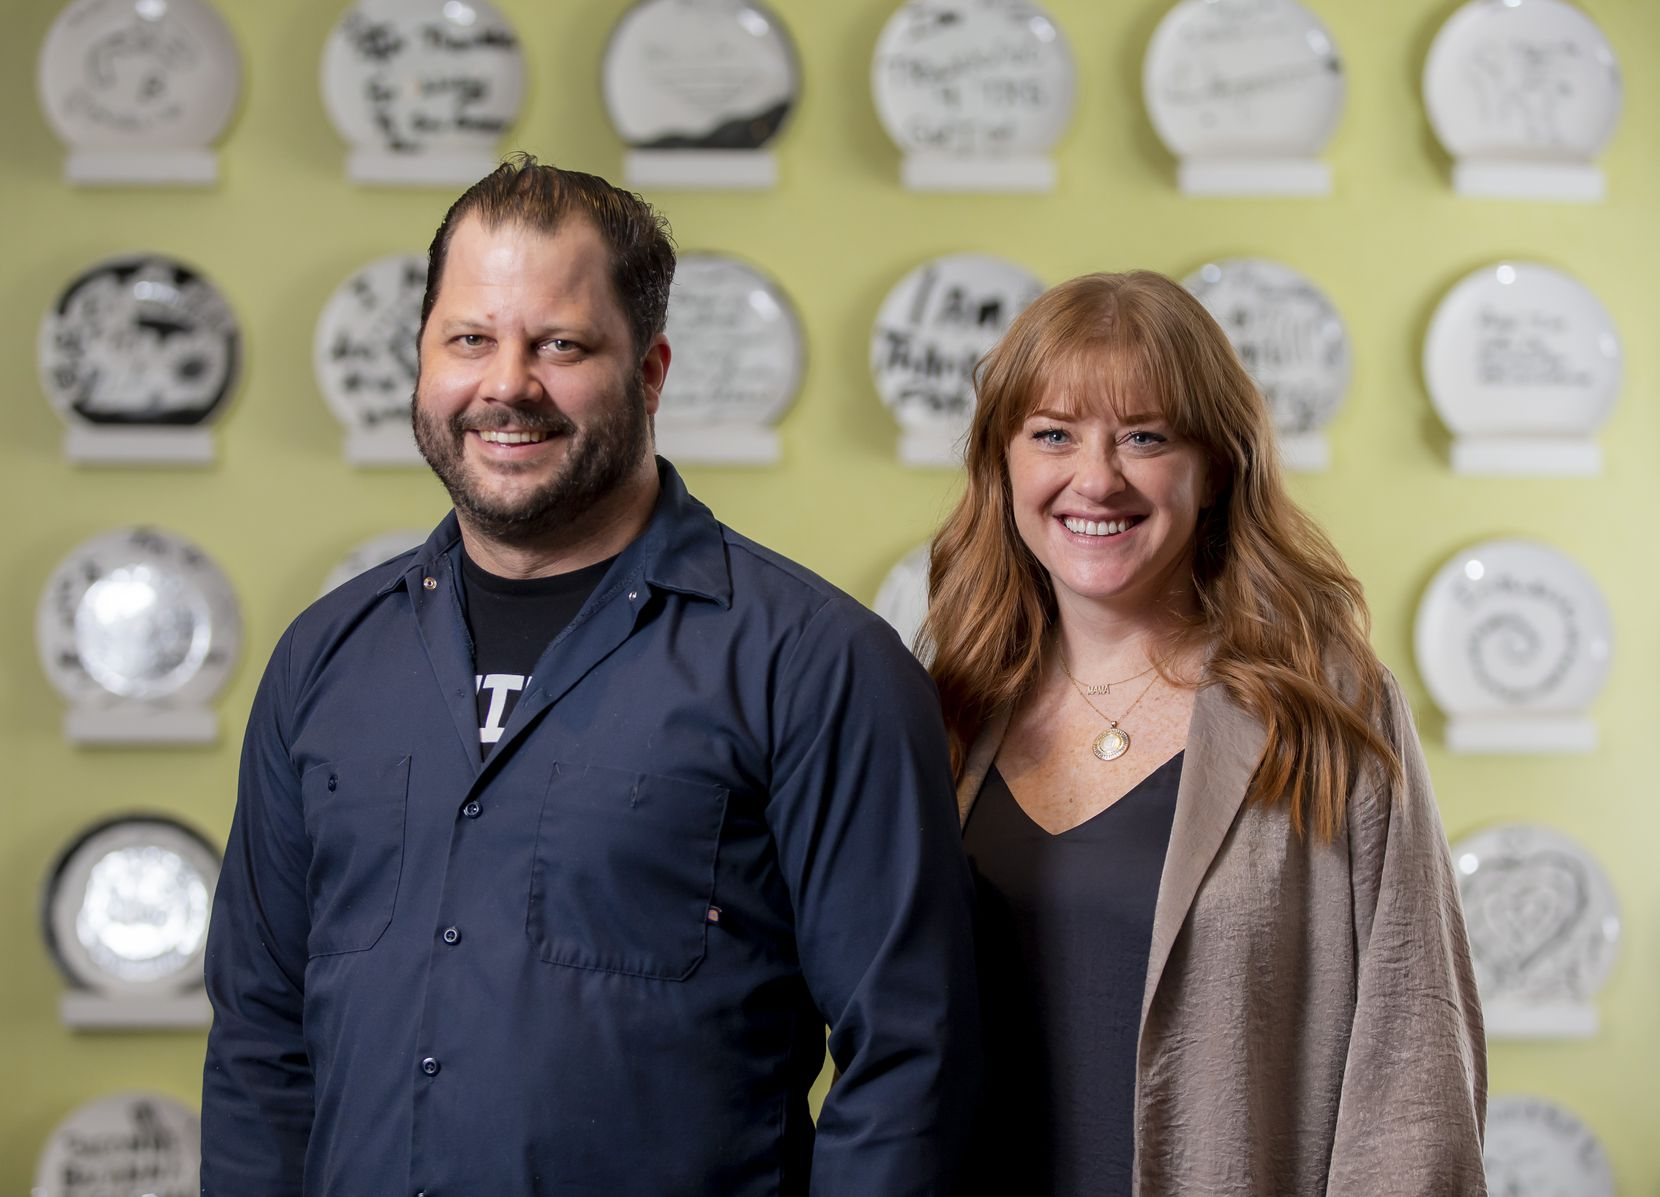 """Chad Houser, owner of Café Momentum, and Olivia Cole, Momentum Advisory Collective chief marketing officer, at the restaurant. Houser says the work is """"all about allowing these kids to see themselves for who they truly are, not the constant labels and stereotypes that society unjustly puts on them."""""""